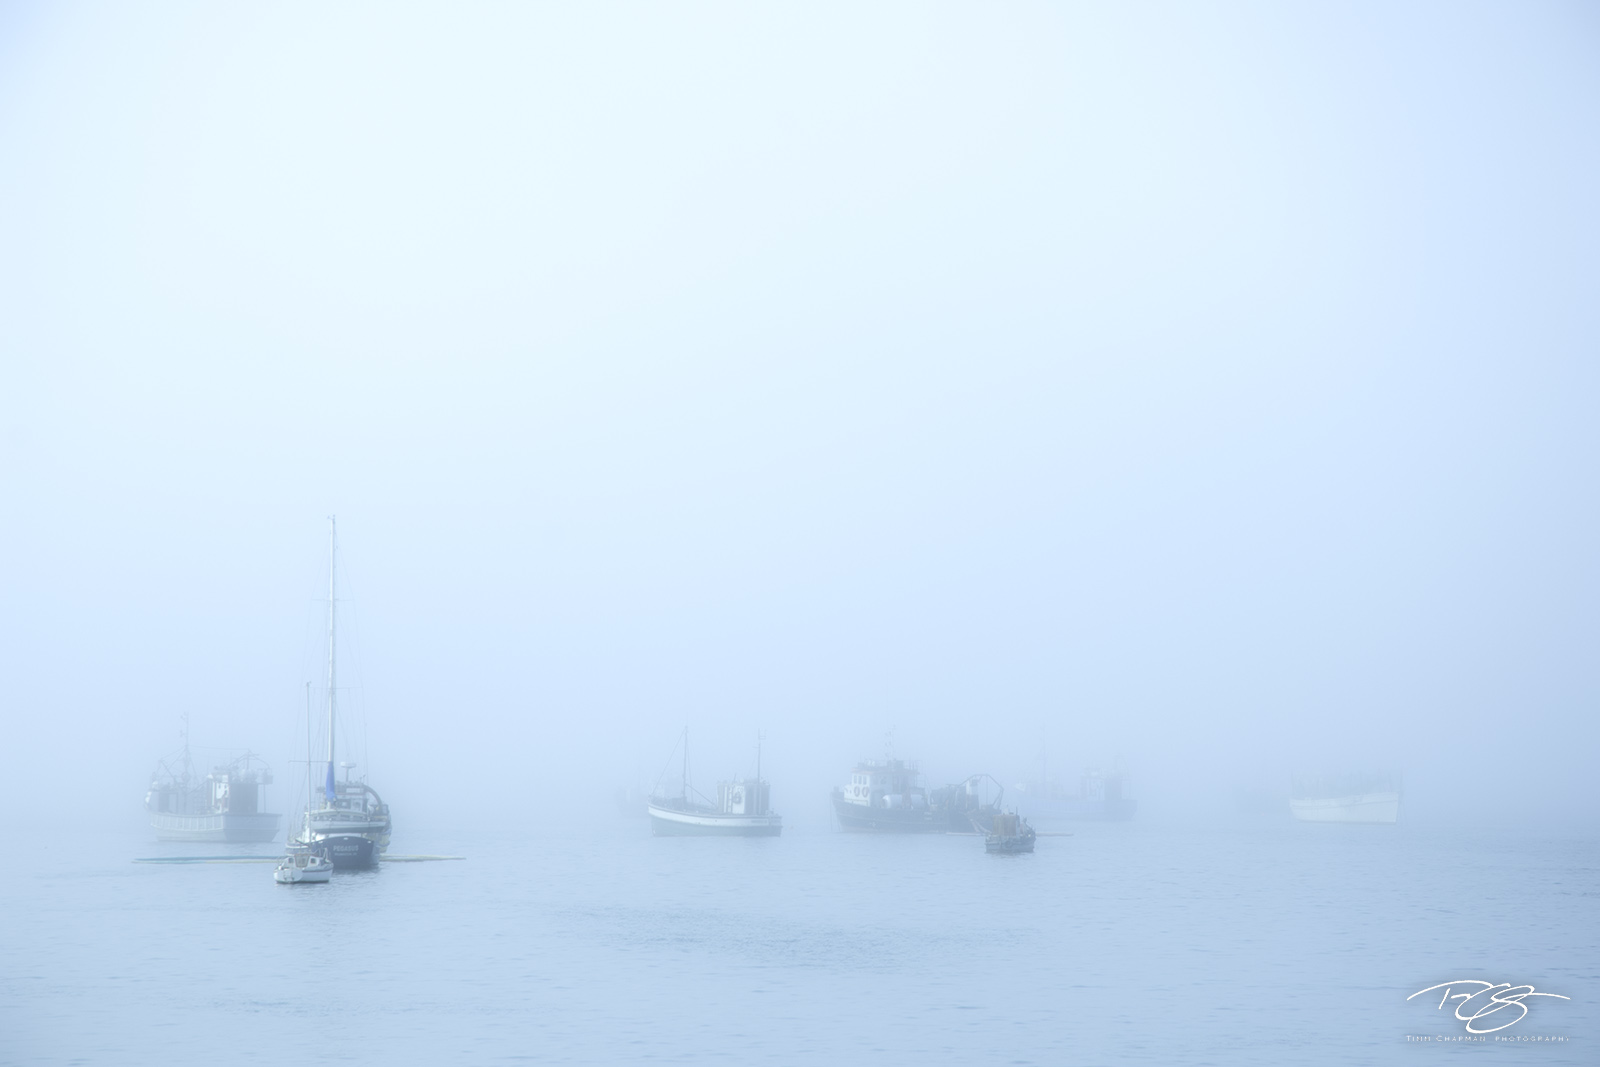 fishing village, harbour, harbor, fog, foggy, boats, marina, luderitz, namibia, etehereal, spooky, ghost, mist, photo